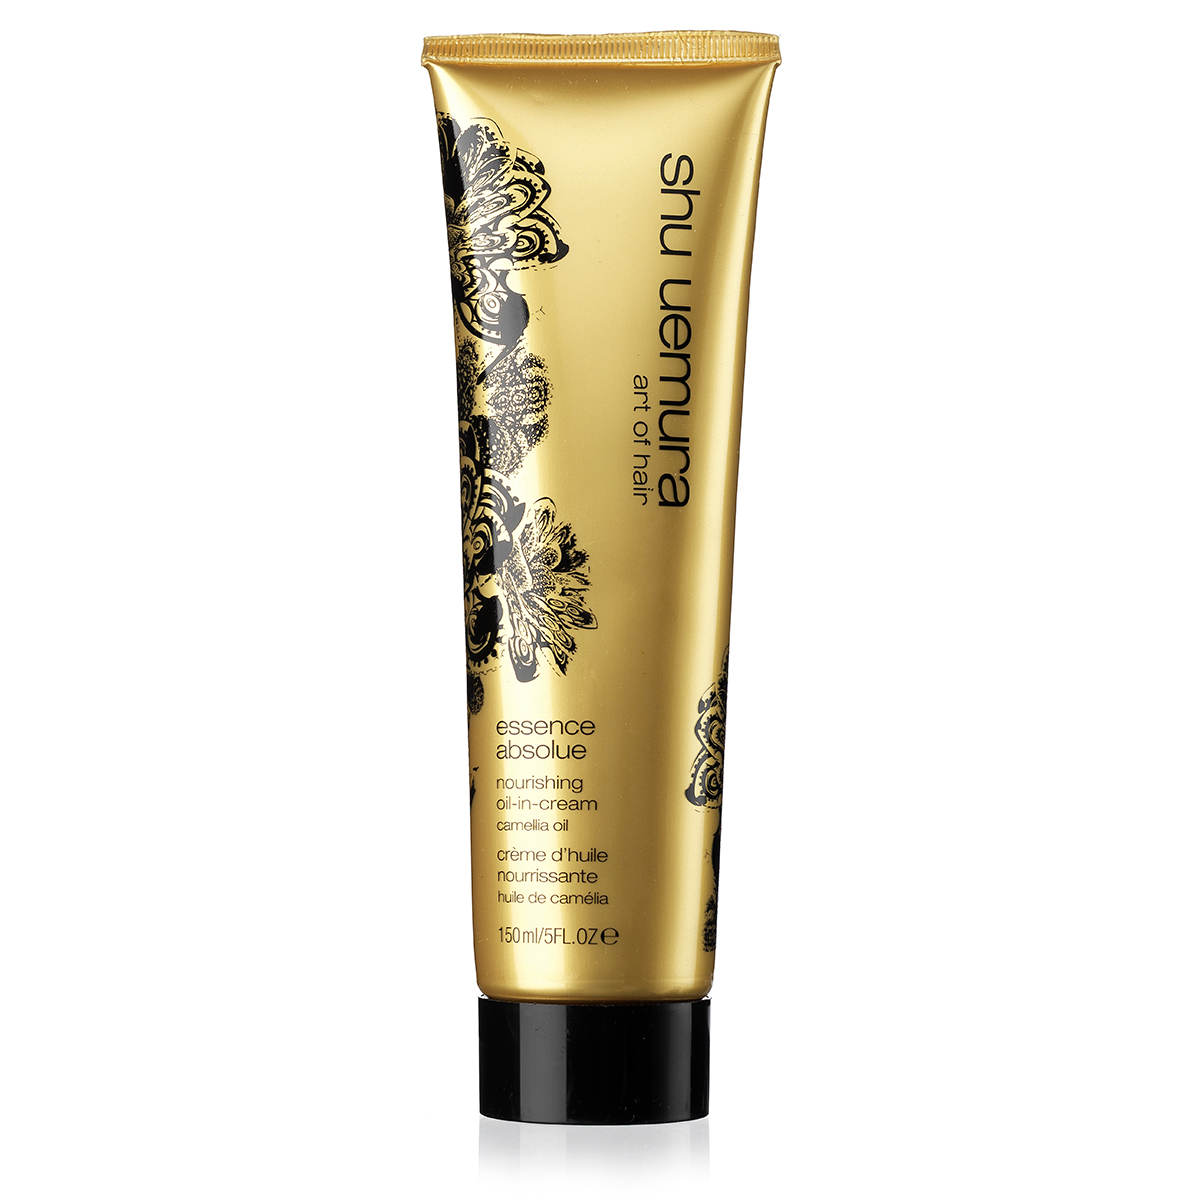 Shu Uemura Essence Absolue Oil-In Cream - 150 ml